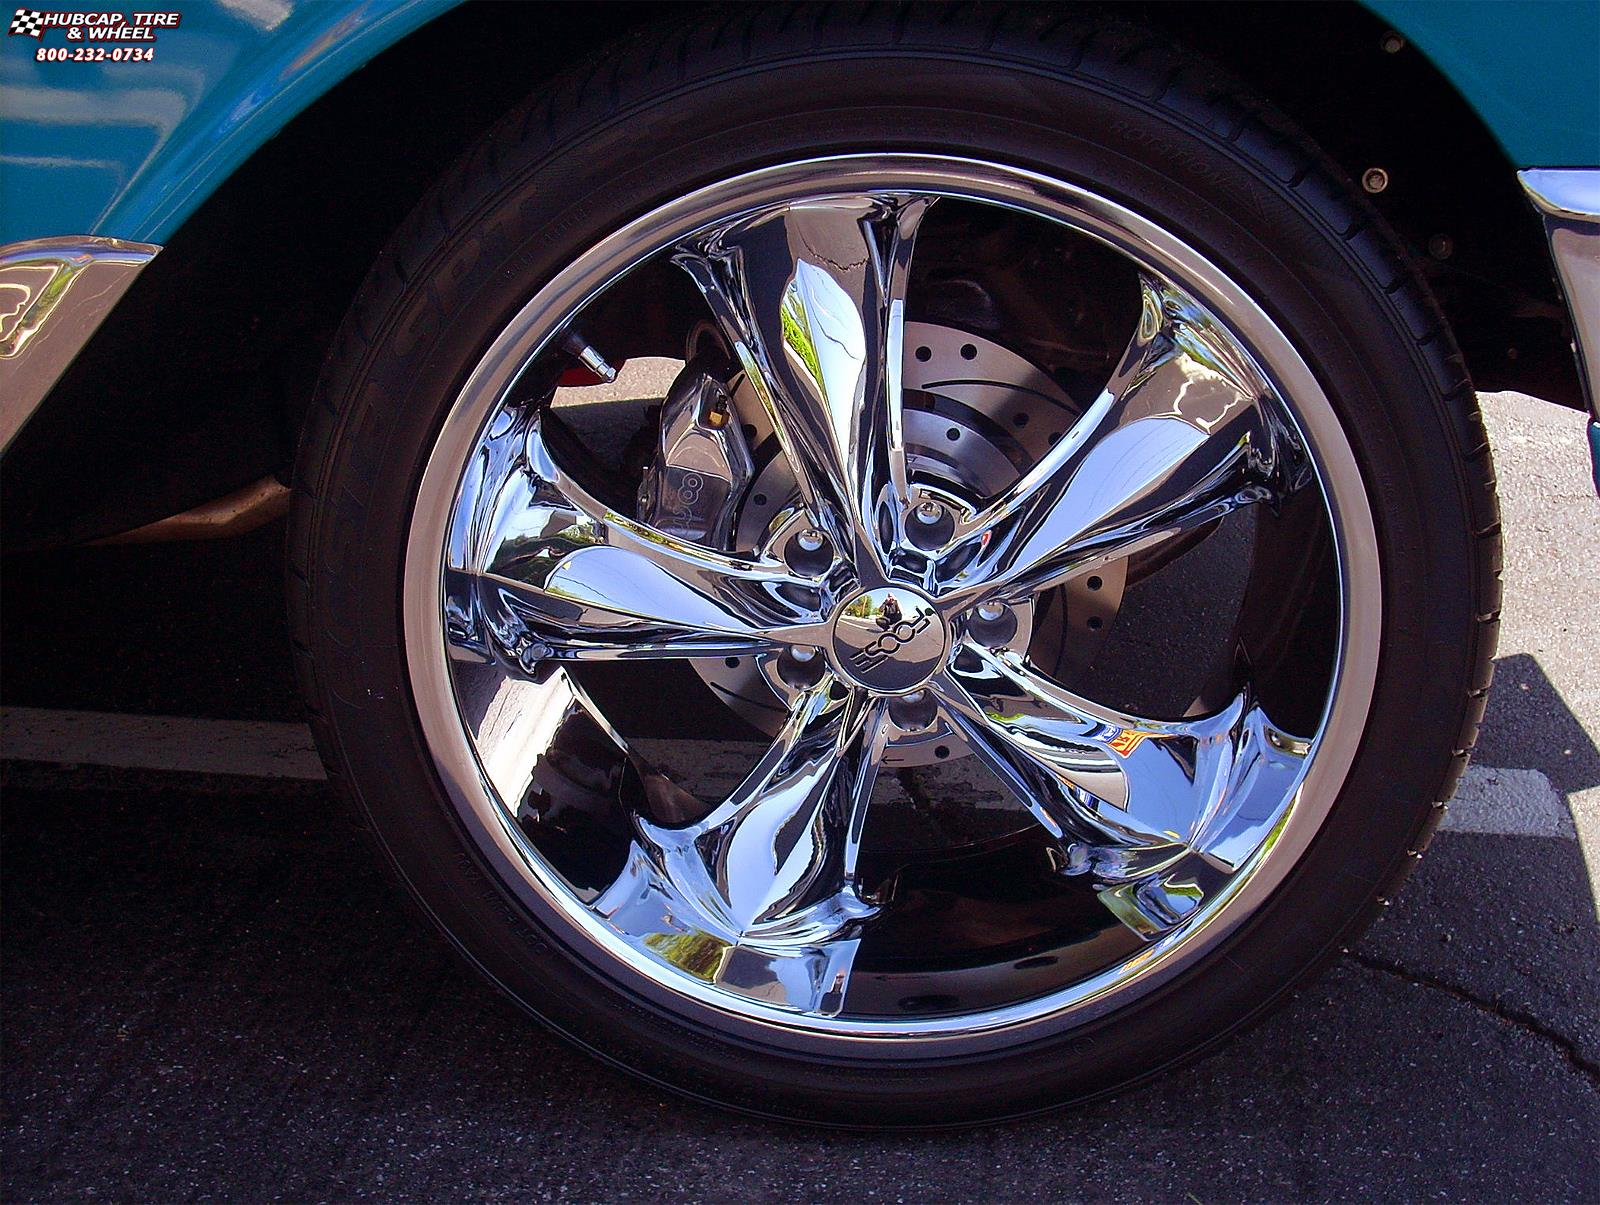 1956 Chevrolet Bel Air Foose Nitrous SE F300 Wheels Chrome